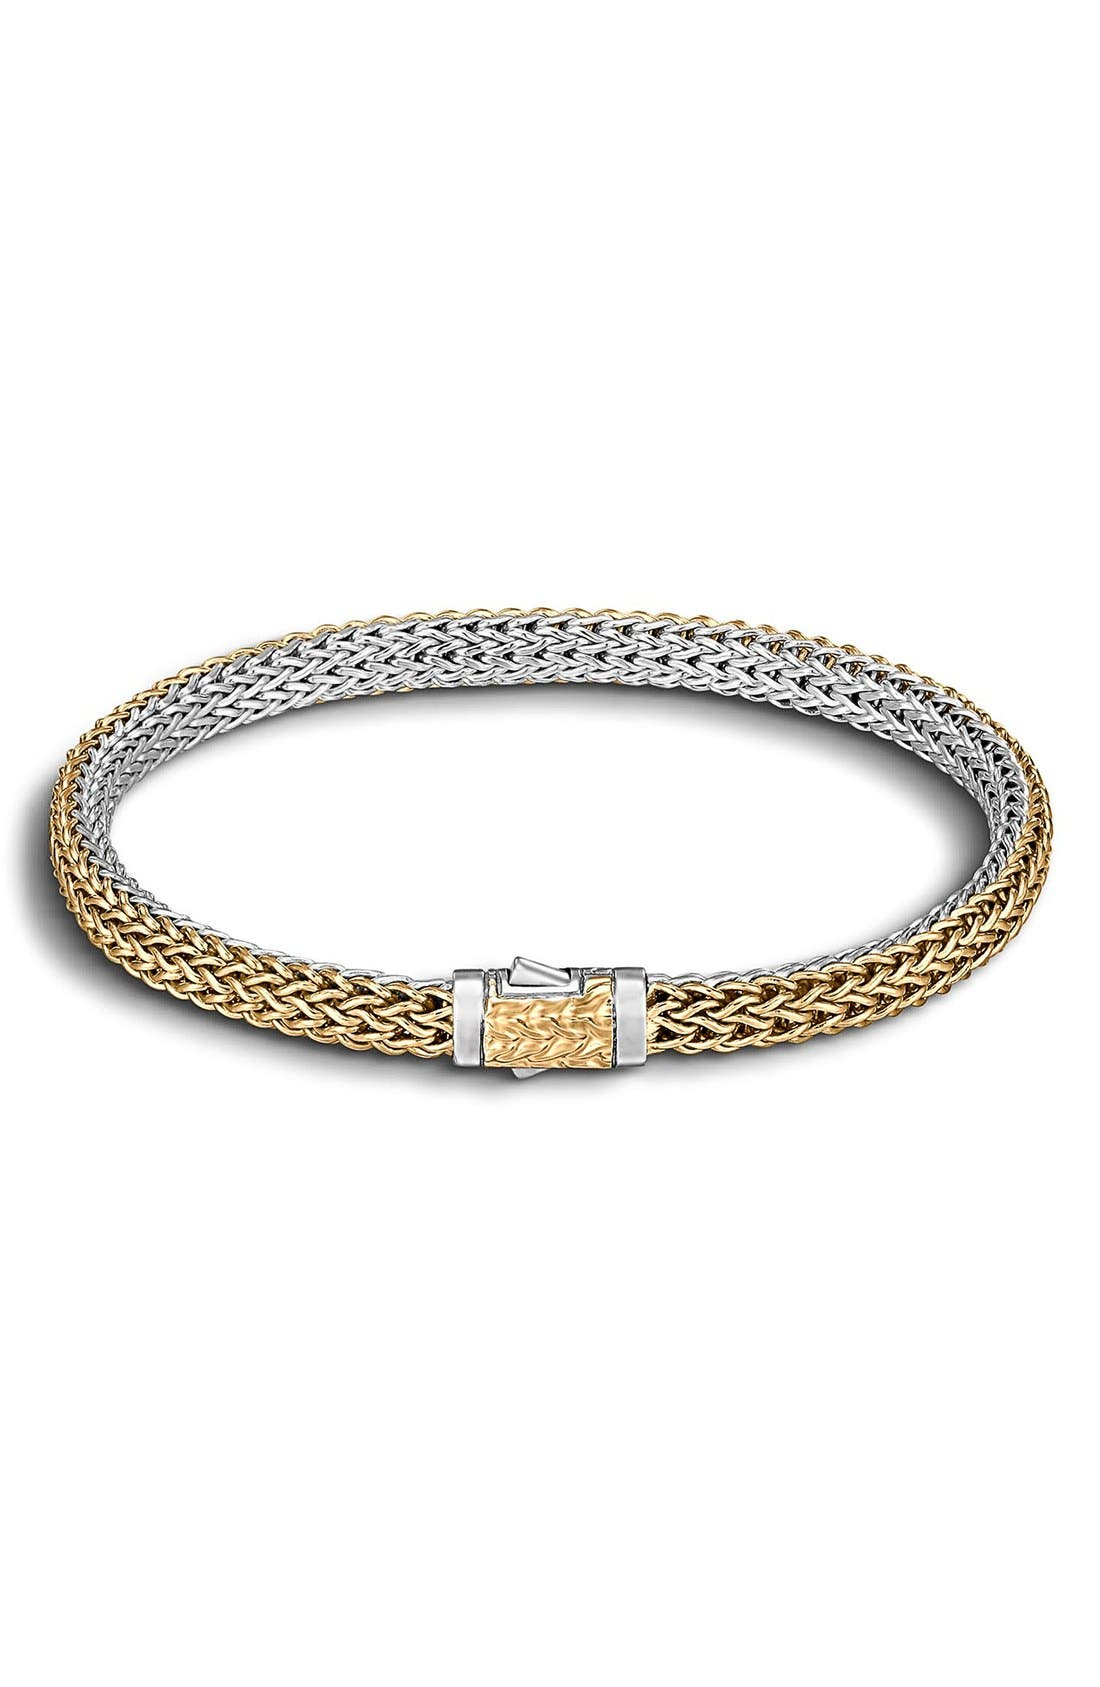 John Hardy 'Classic Chain' Extra Small Reversible Bracelet